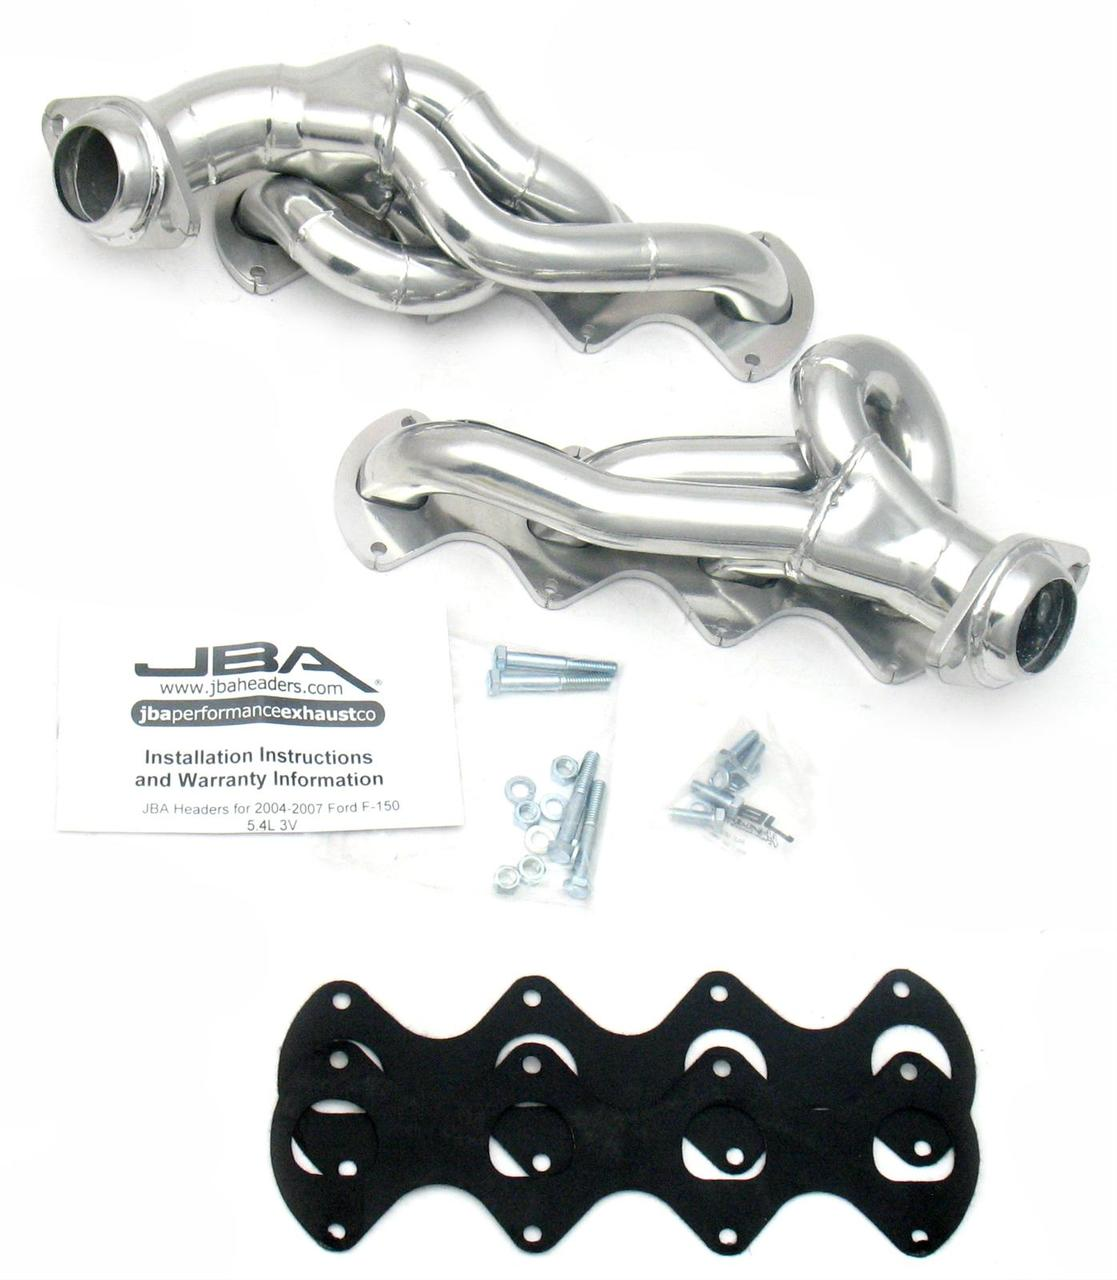 2004 ford f250 5.4 headers